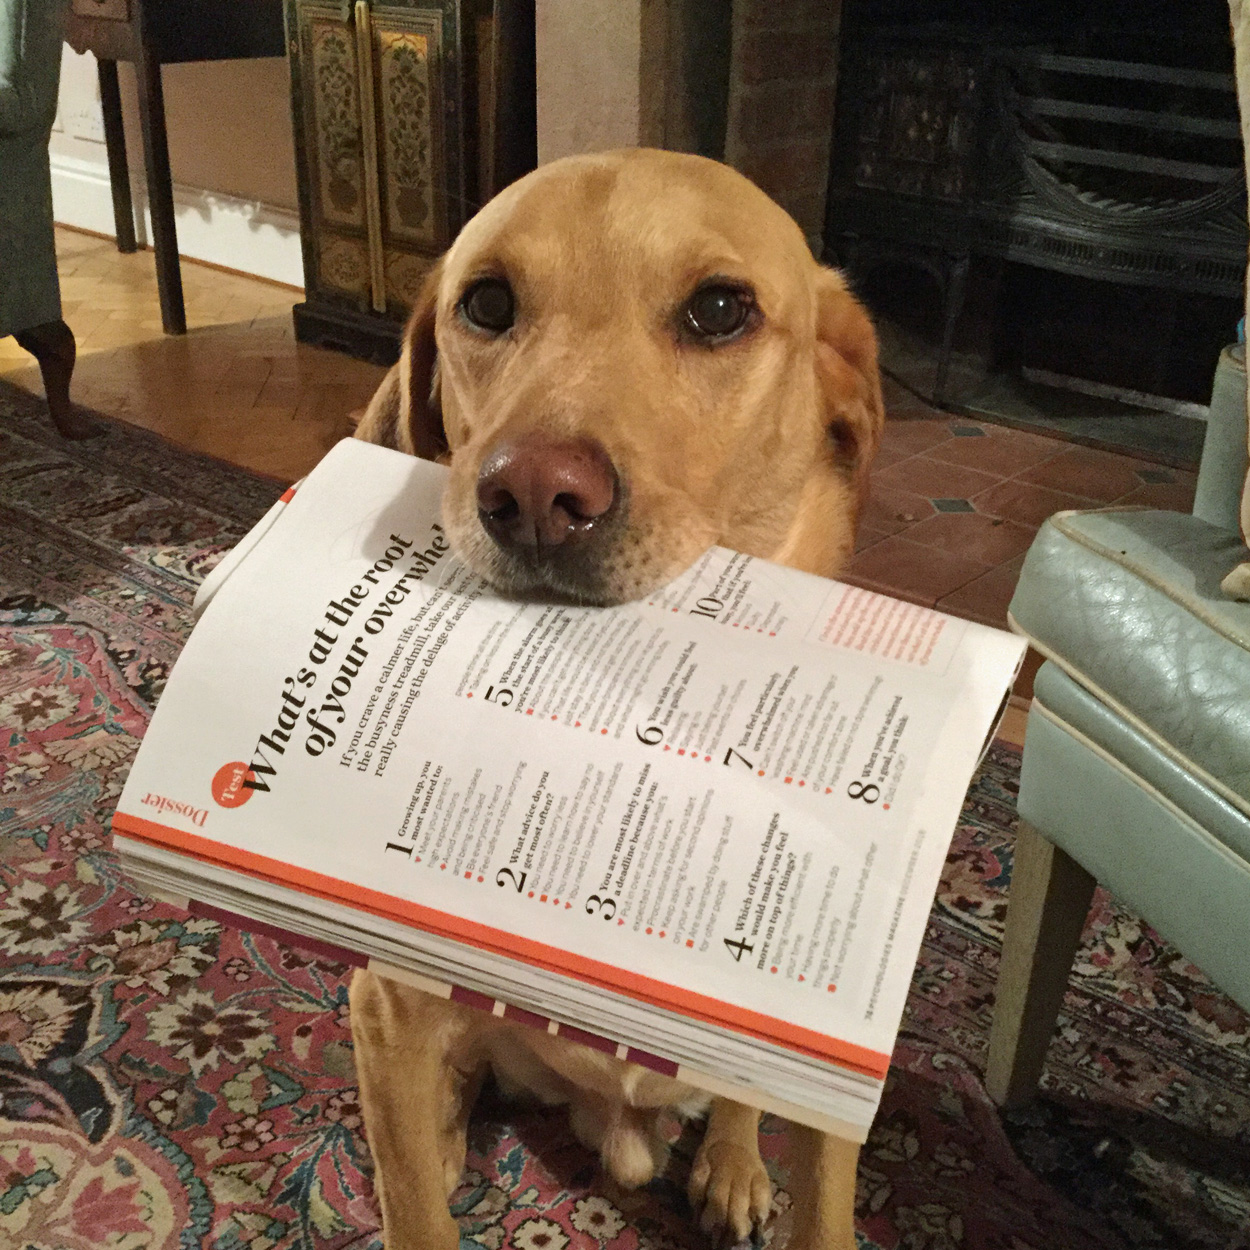 Labrador with copy of Psychologies Magazine in his mouth